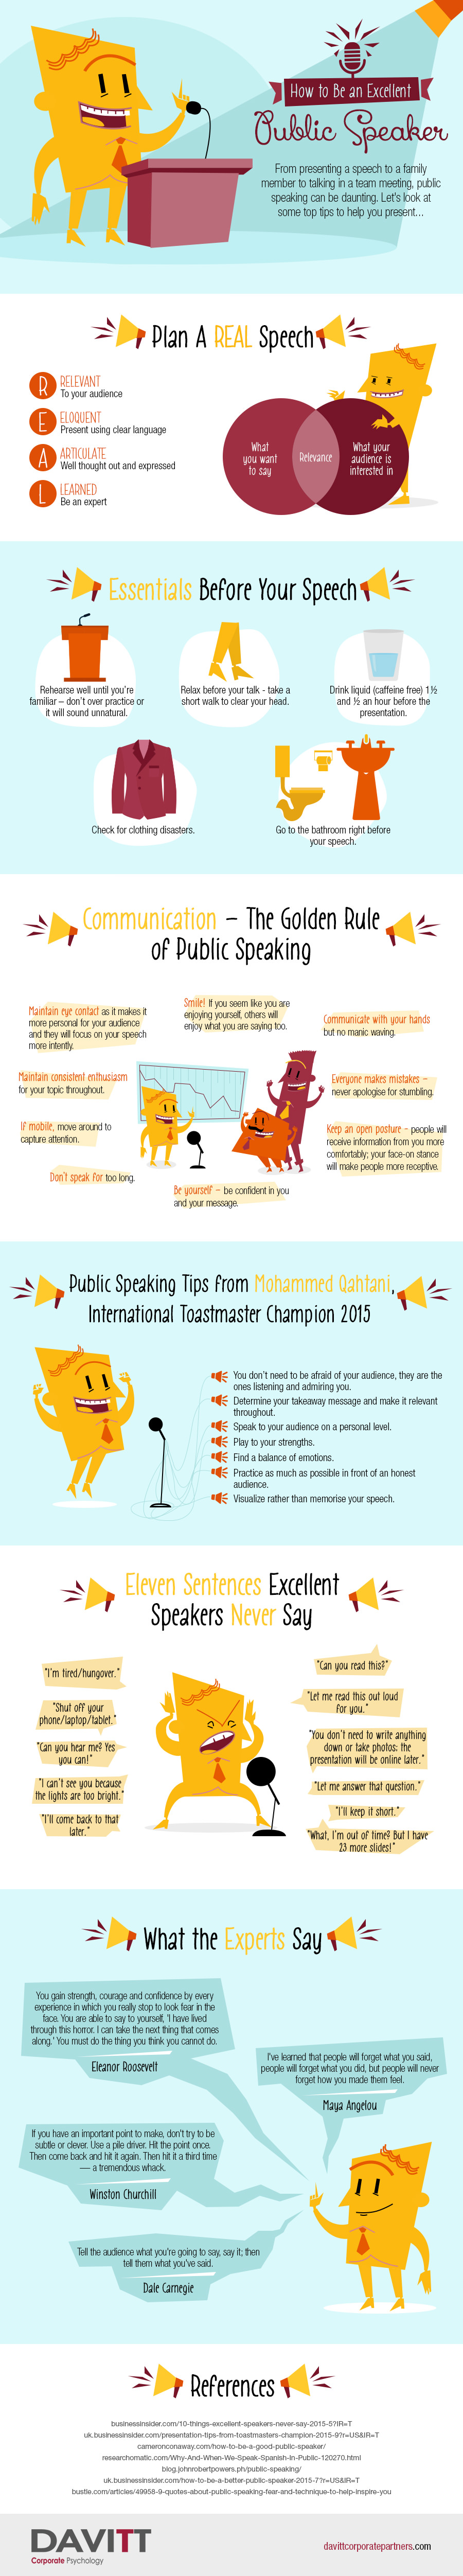 how to be an excellent public speaker